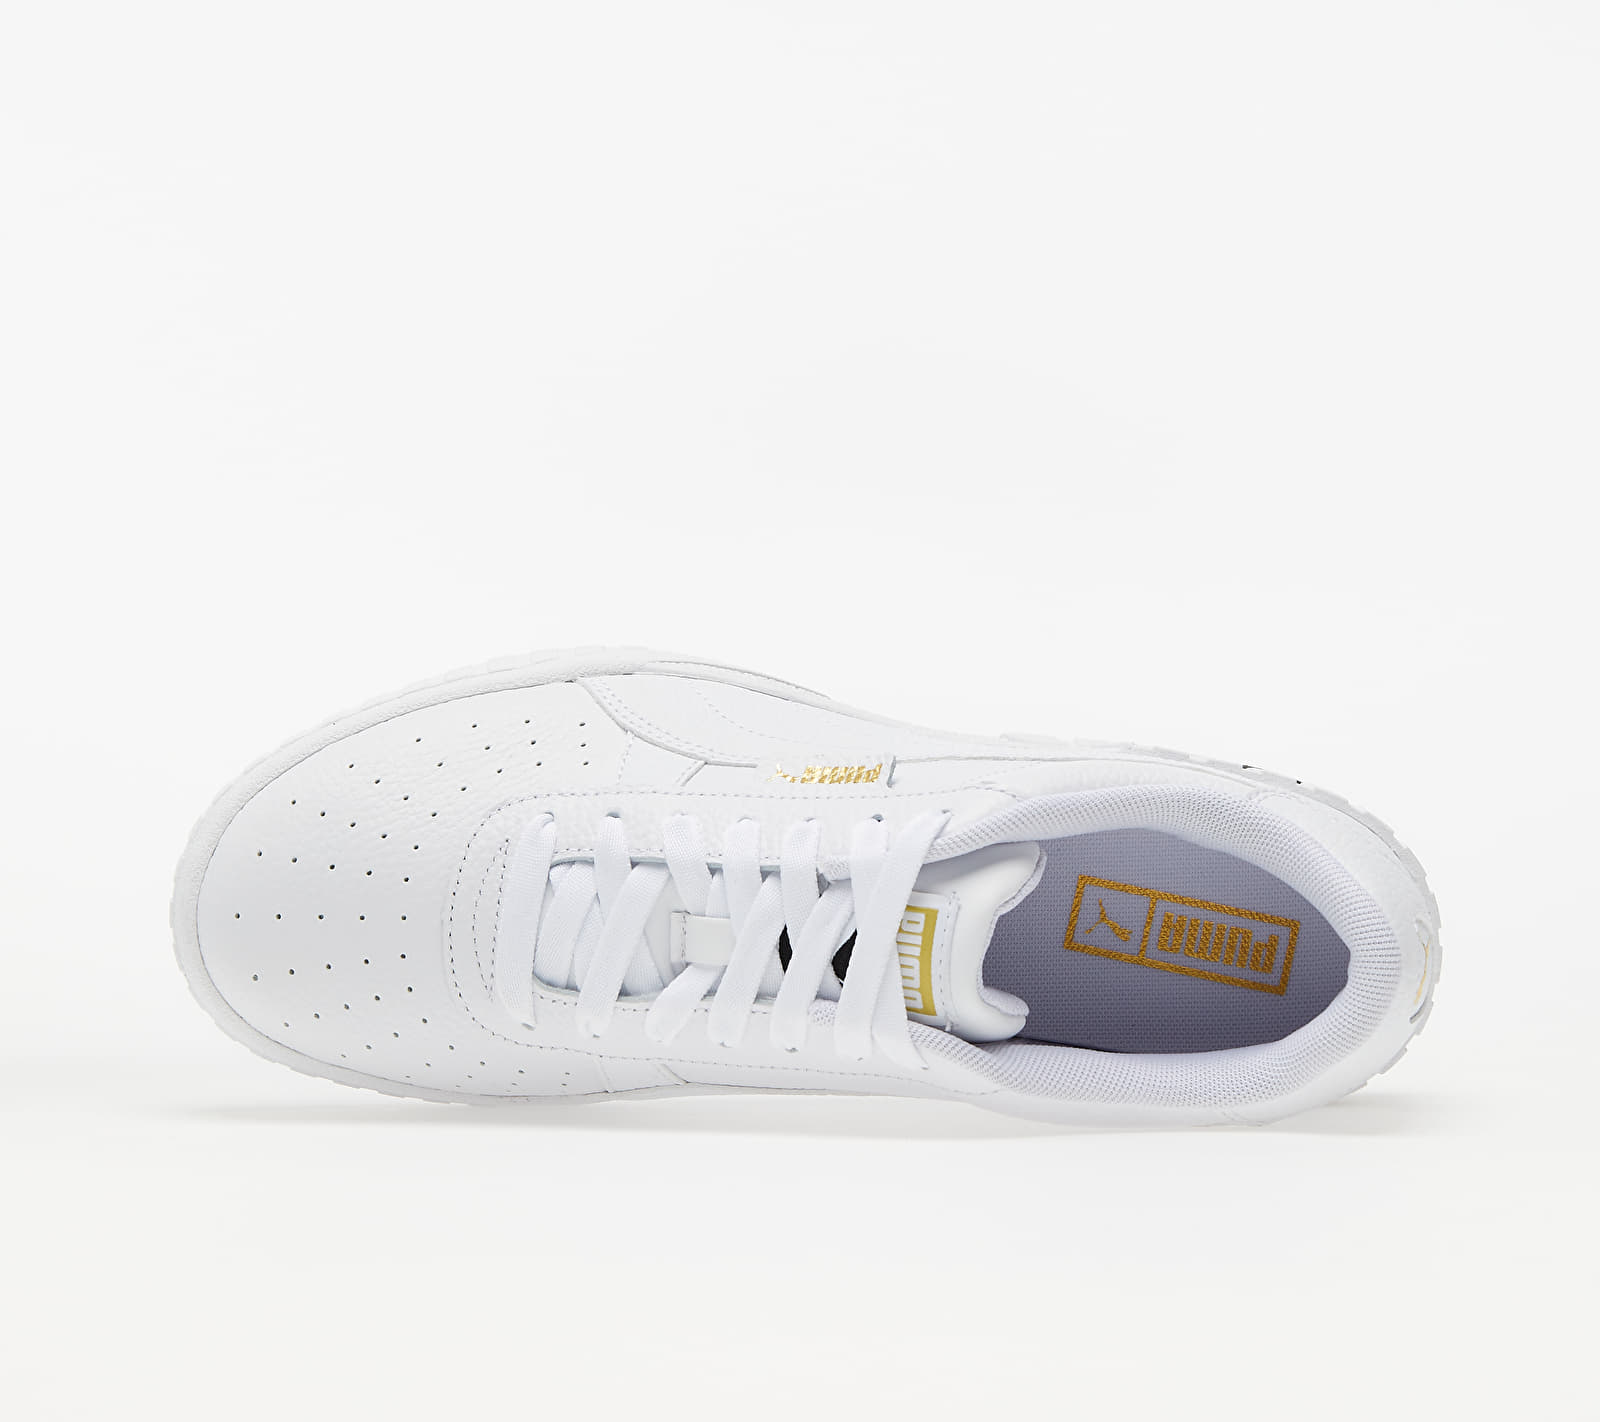 "Puma Cali Wedge Wn""s Puma White-Puma Black"